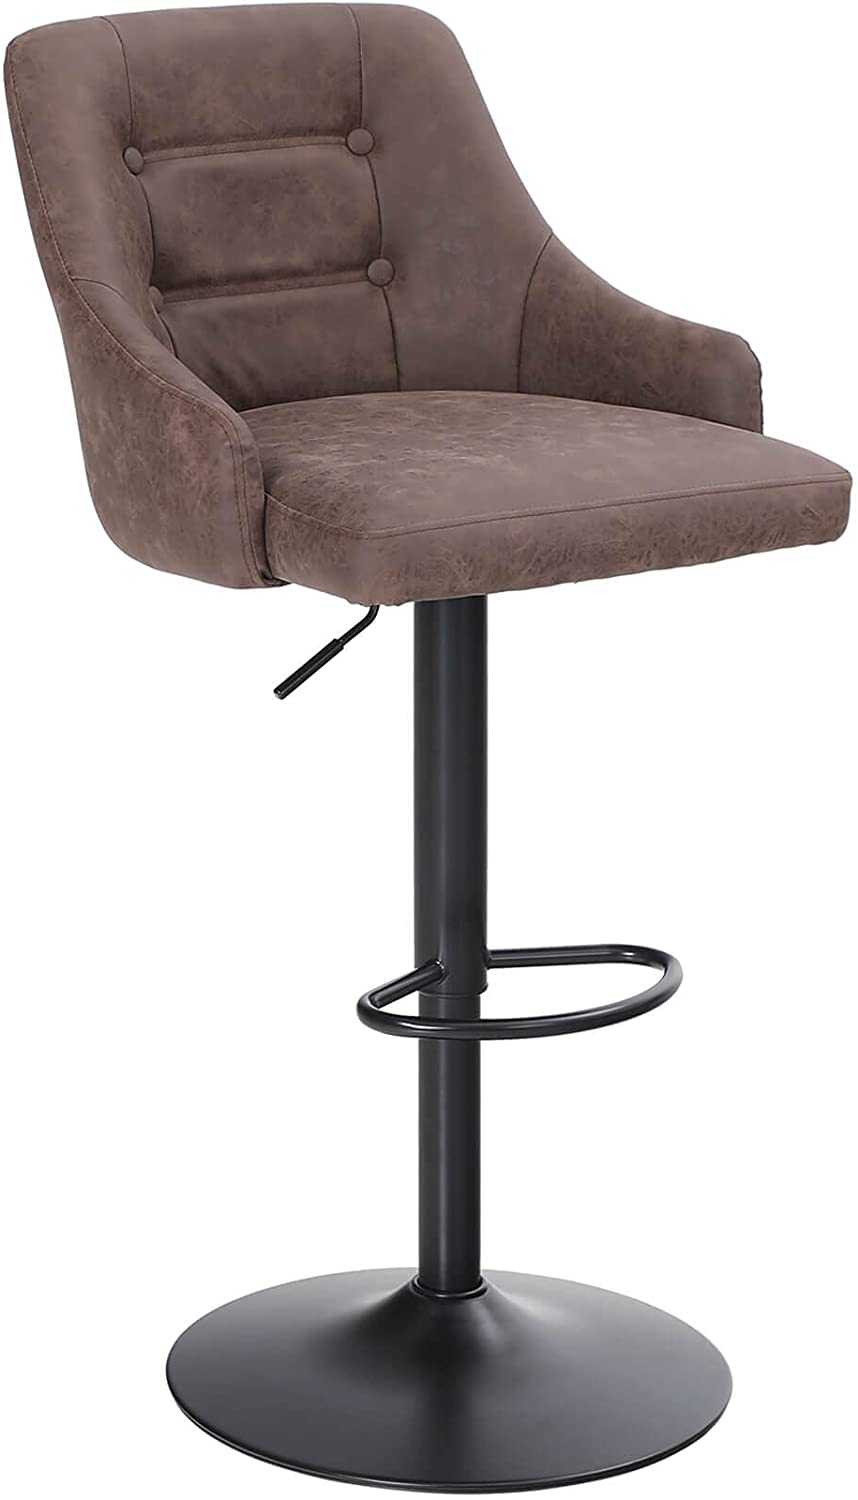 Sophia & William Bar Stools Counter Height, Adjustable Swivel Barstools with Back Bar Height, Modern PU Leather Upholstered Dining Chairs for Kitchen Pub, 300lbs, (Brown 1 pcs)